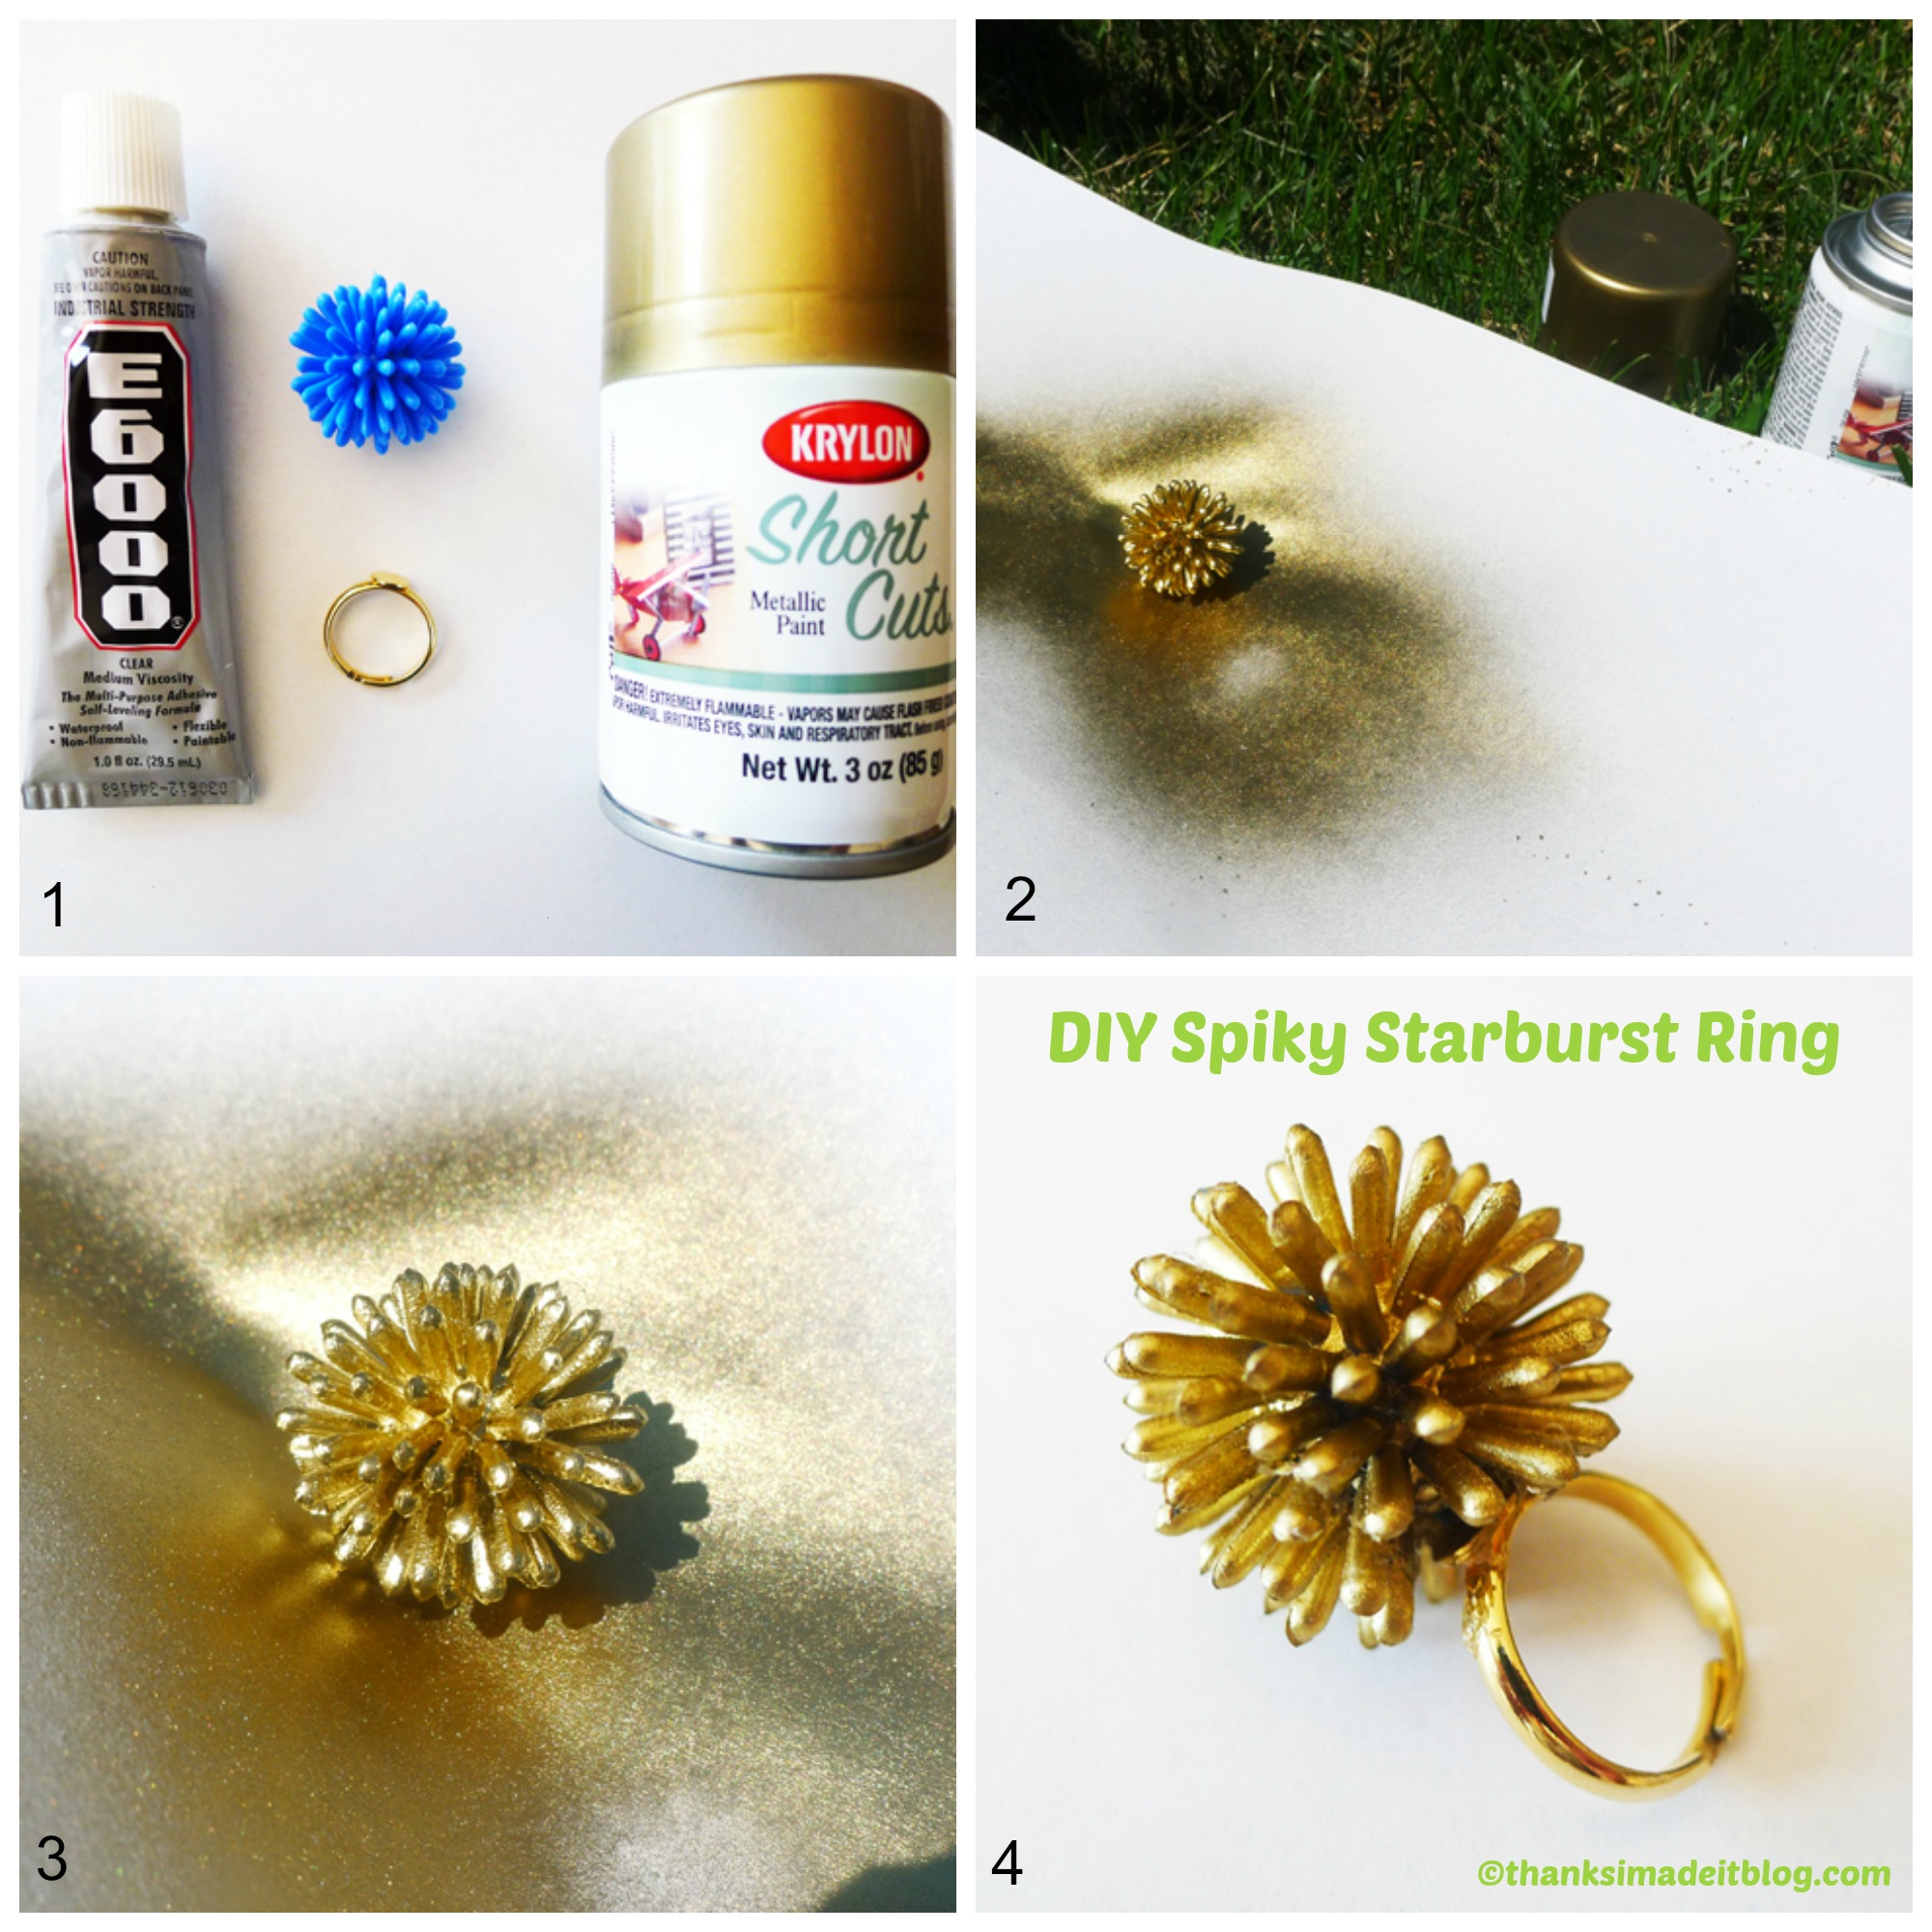 How to make a Spiky Starburst Ring